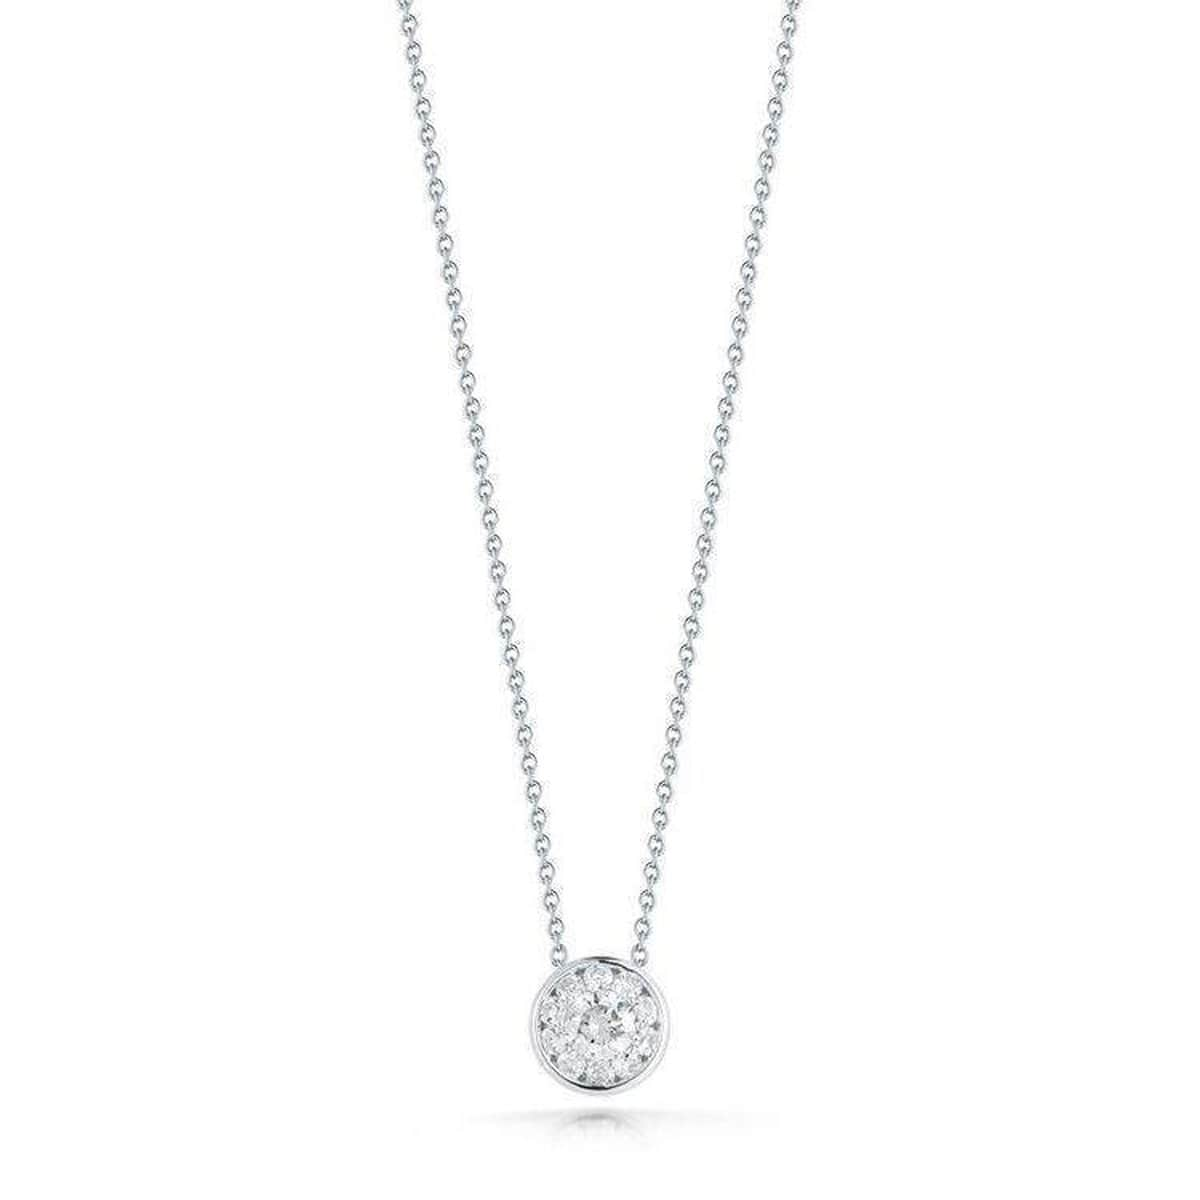 18k White Gold & Diamond Necklace - 518150AWCHX0-Roberto Coin-Renee Taylor Gallery